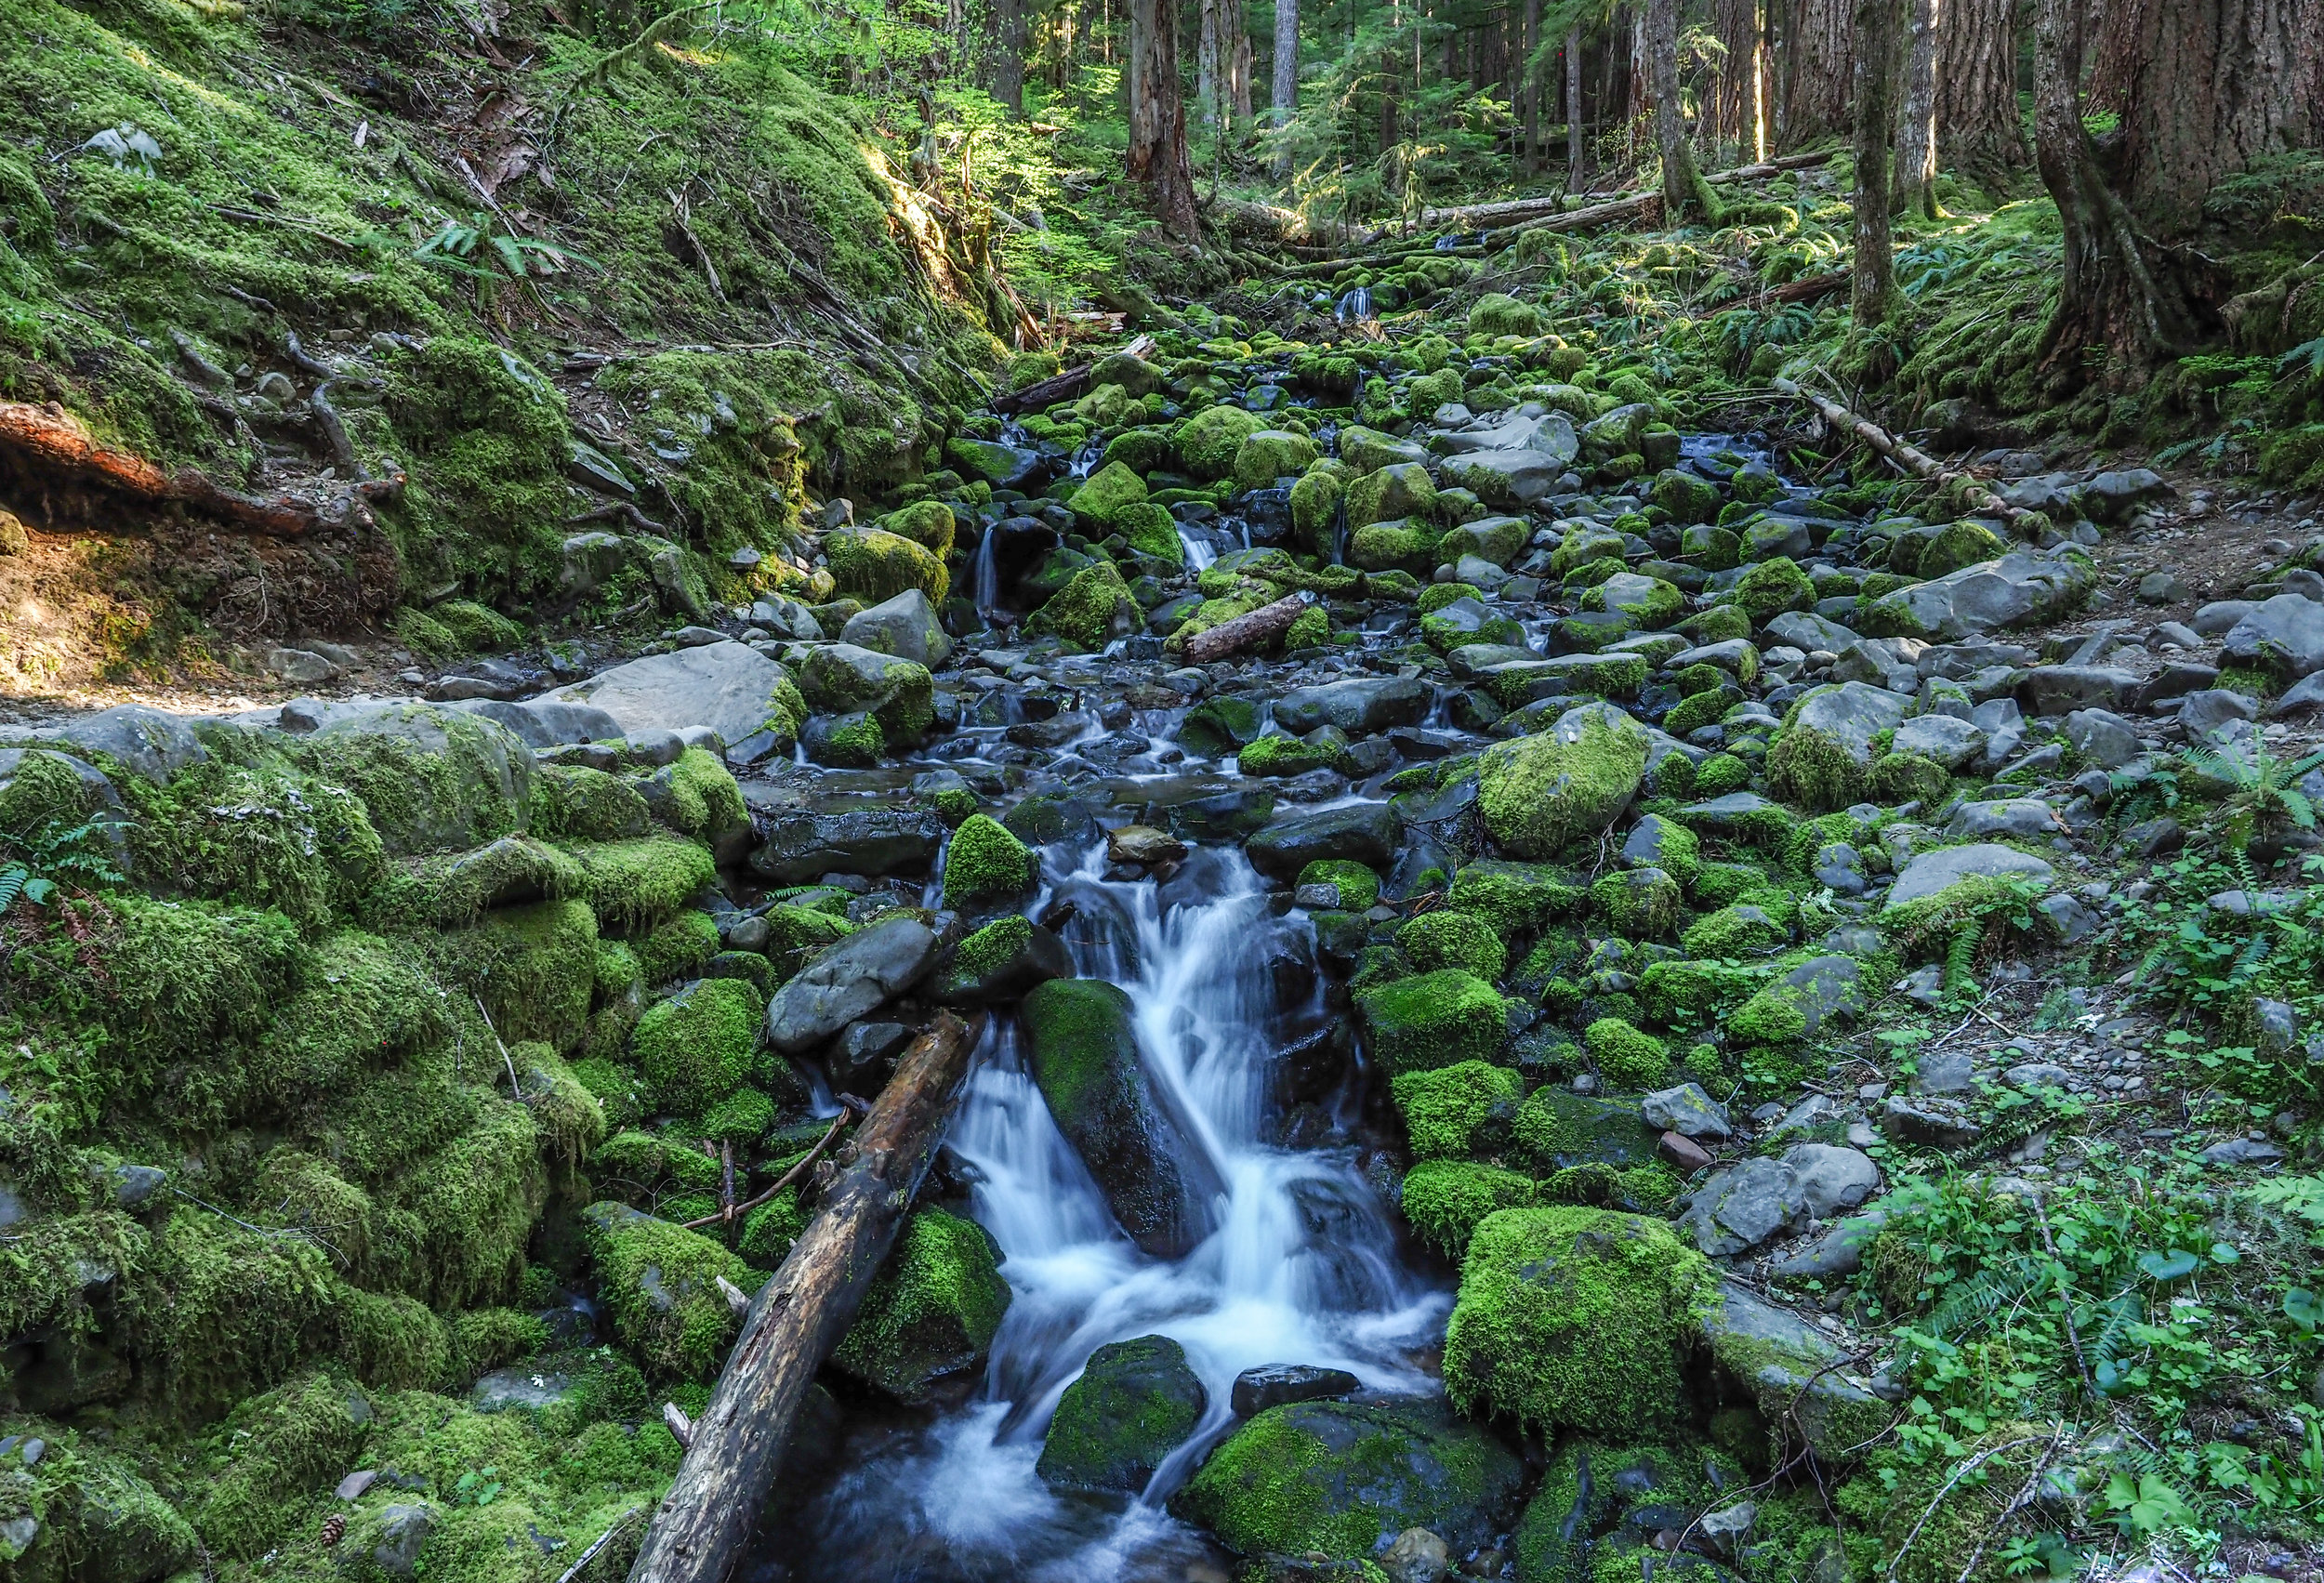 On the trail in the early am to Sol Duc Falls